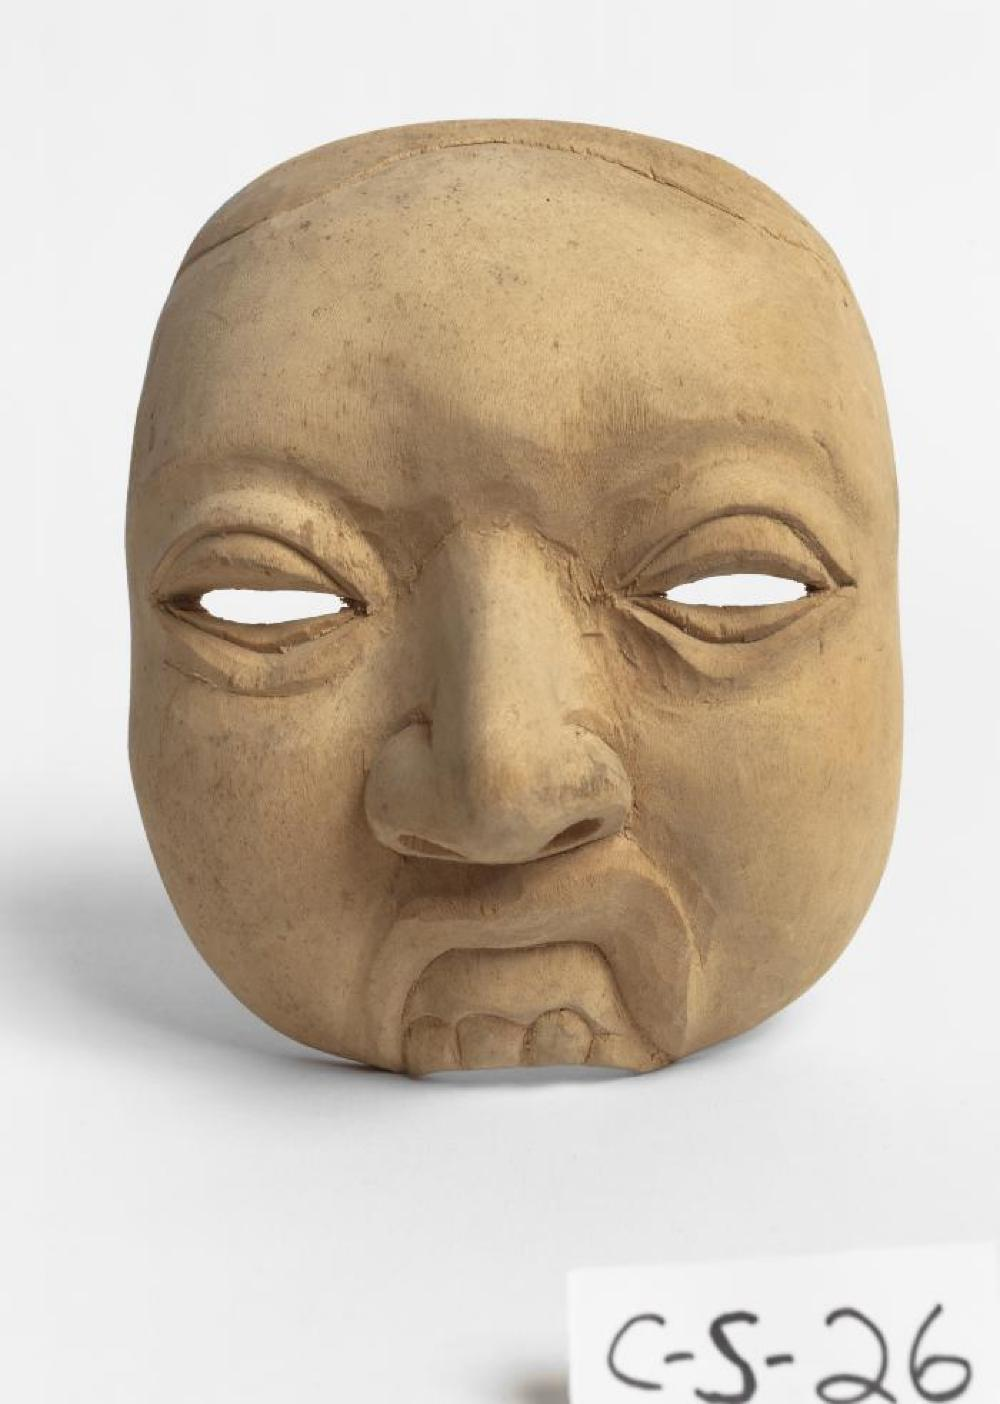 Balinese; Topeng Bondres Mask; 20th century; Wood; 6 1/2 x 5 13/16 x 3 in.; Collection of Isamu Noguchi. (Study Collection; Collectibles, C-S-26)